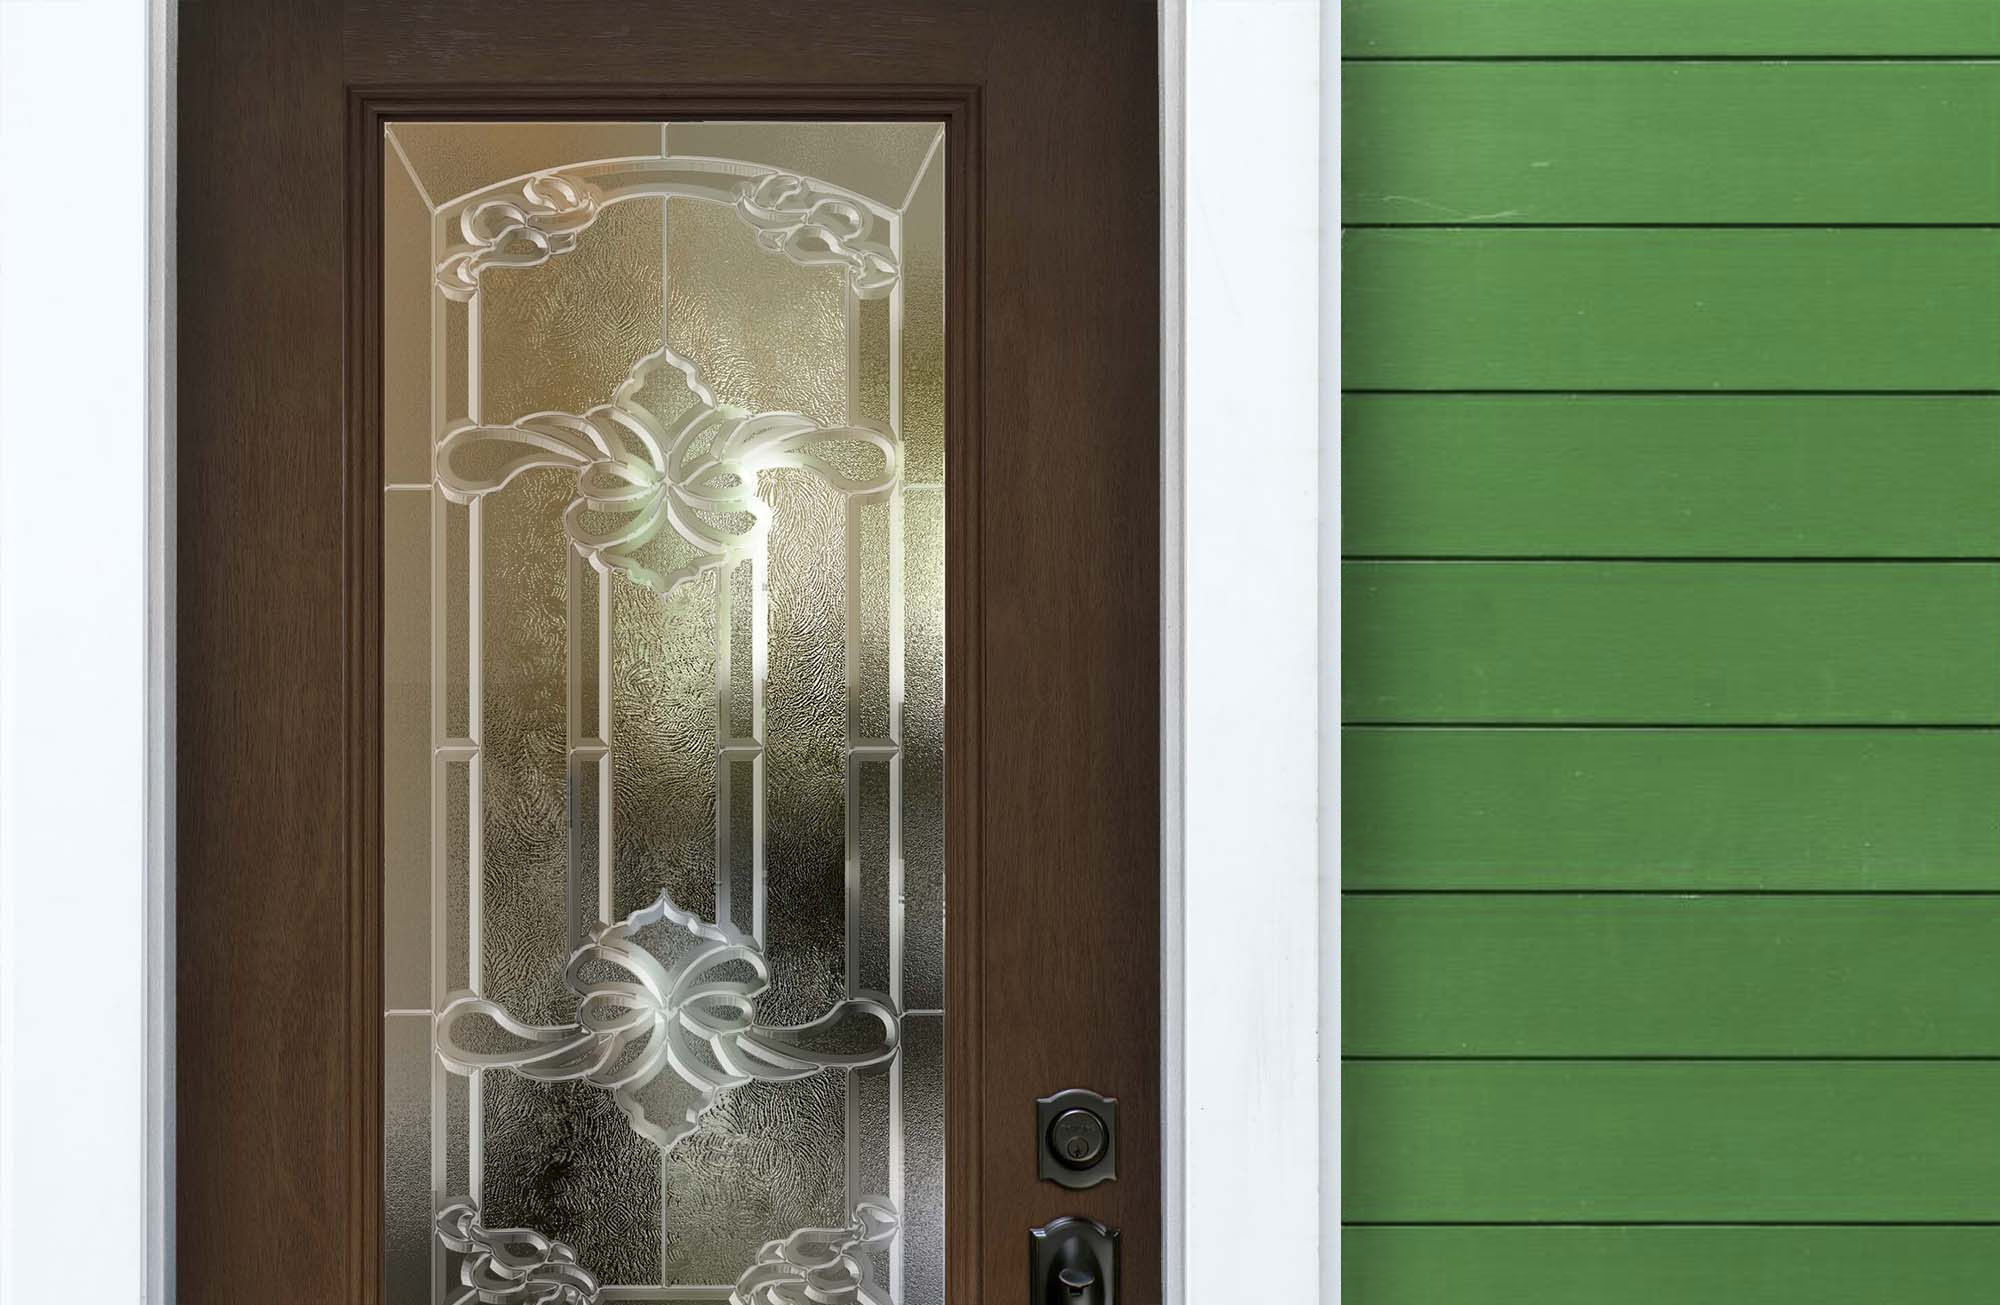 Green fiber cement siding with a cool brown real wood front door, stained glass and black door hardware.